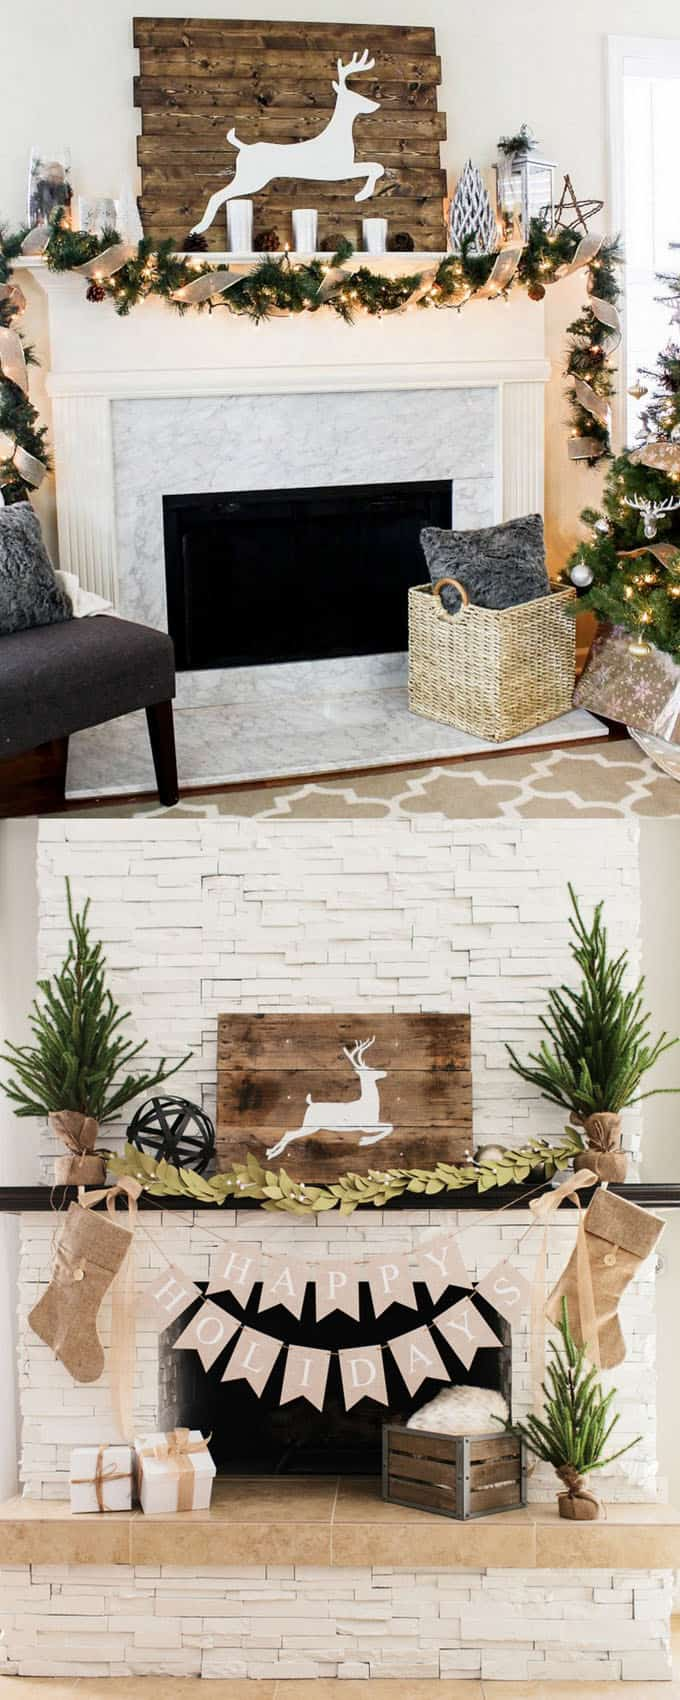 100+ Favorite Christmas Decorating Ideas For Every Room in Your Home ...